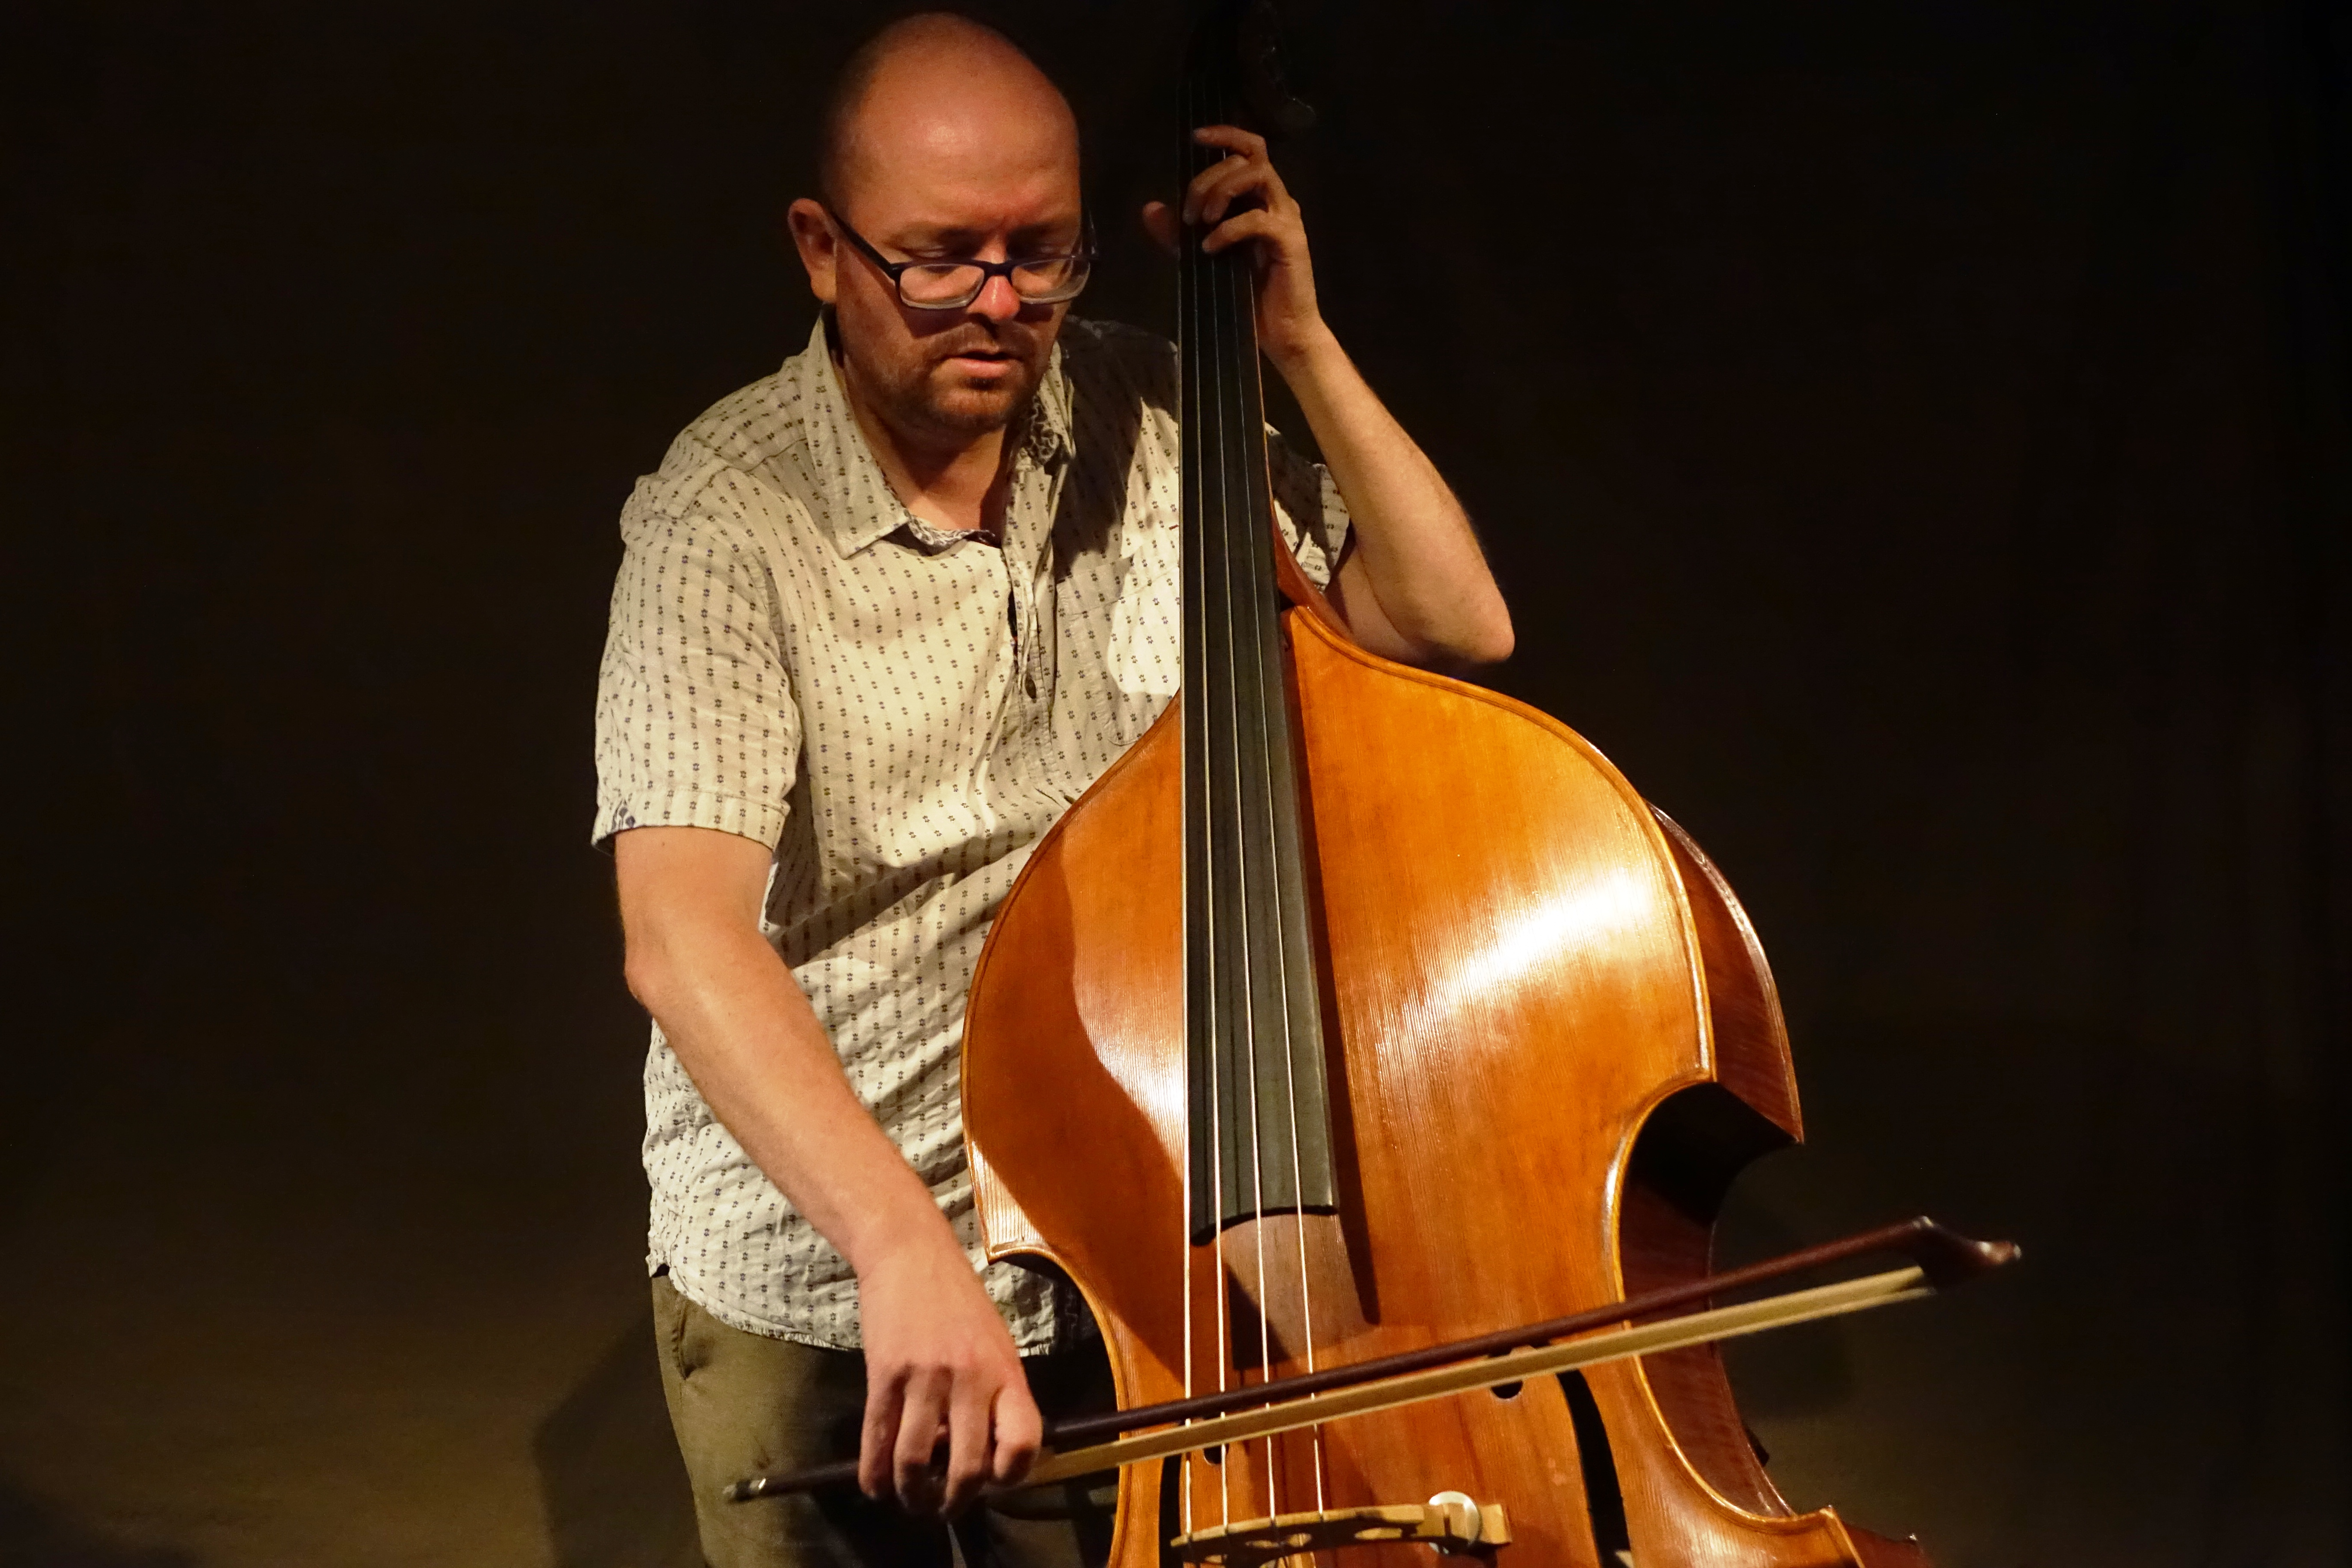 Olie Brice at Cafe Oto, London in July 2019